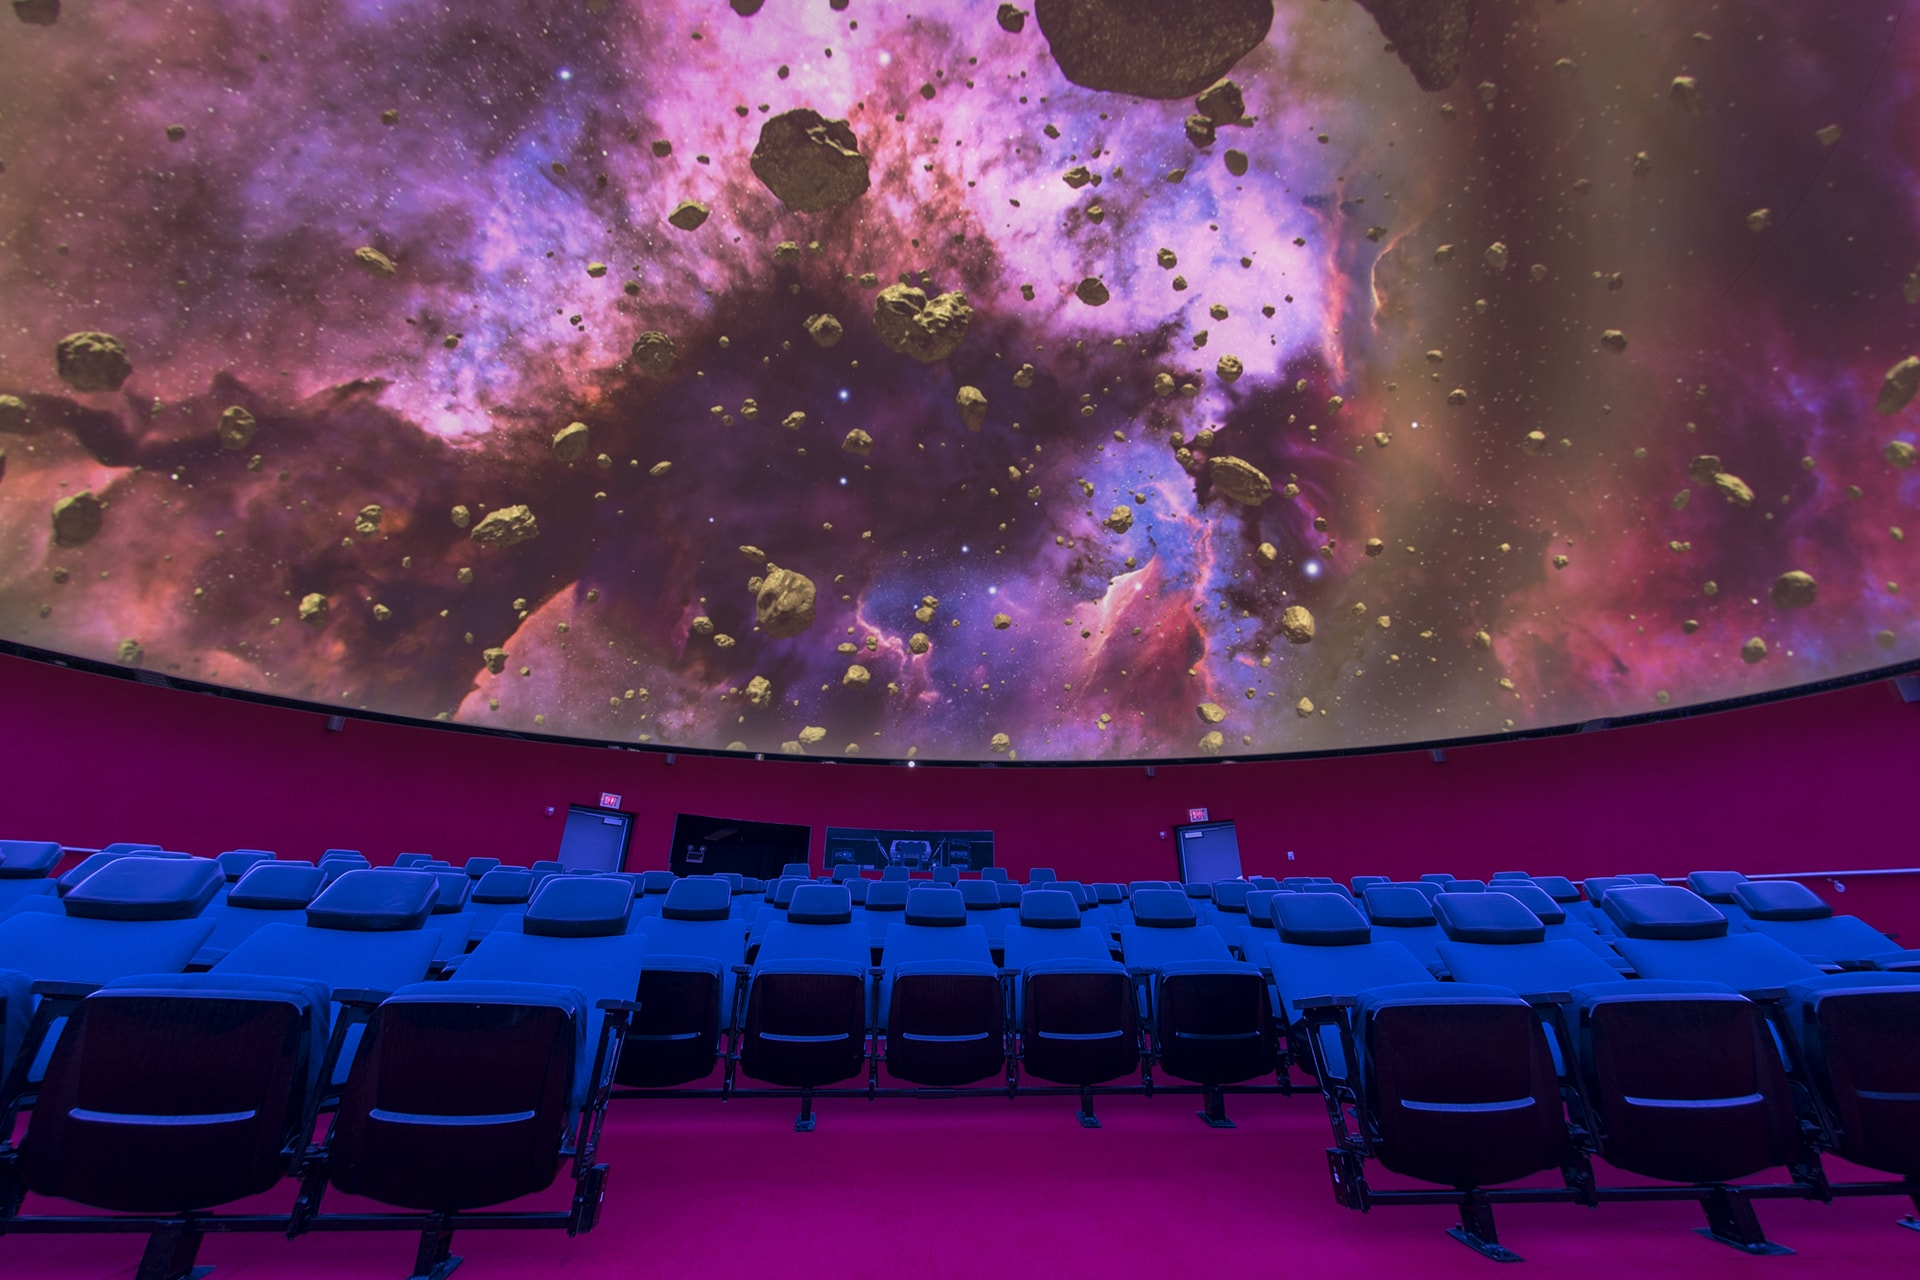 The Planetarium Theater